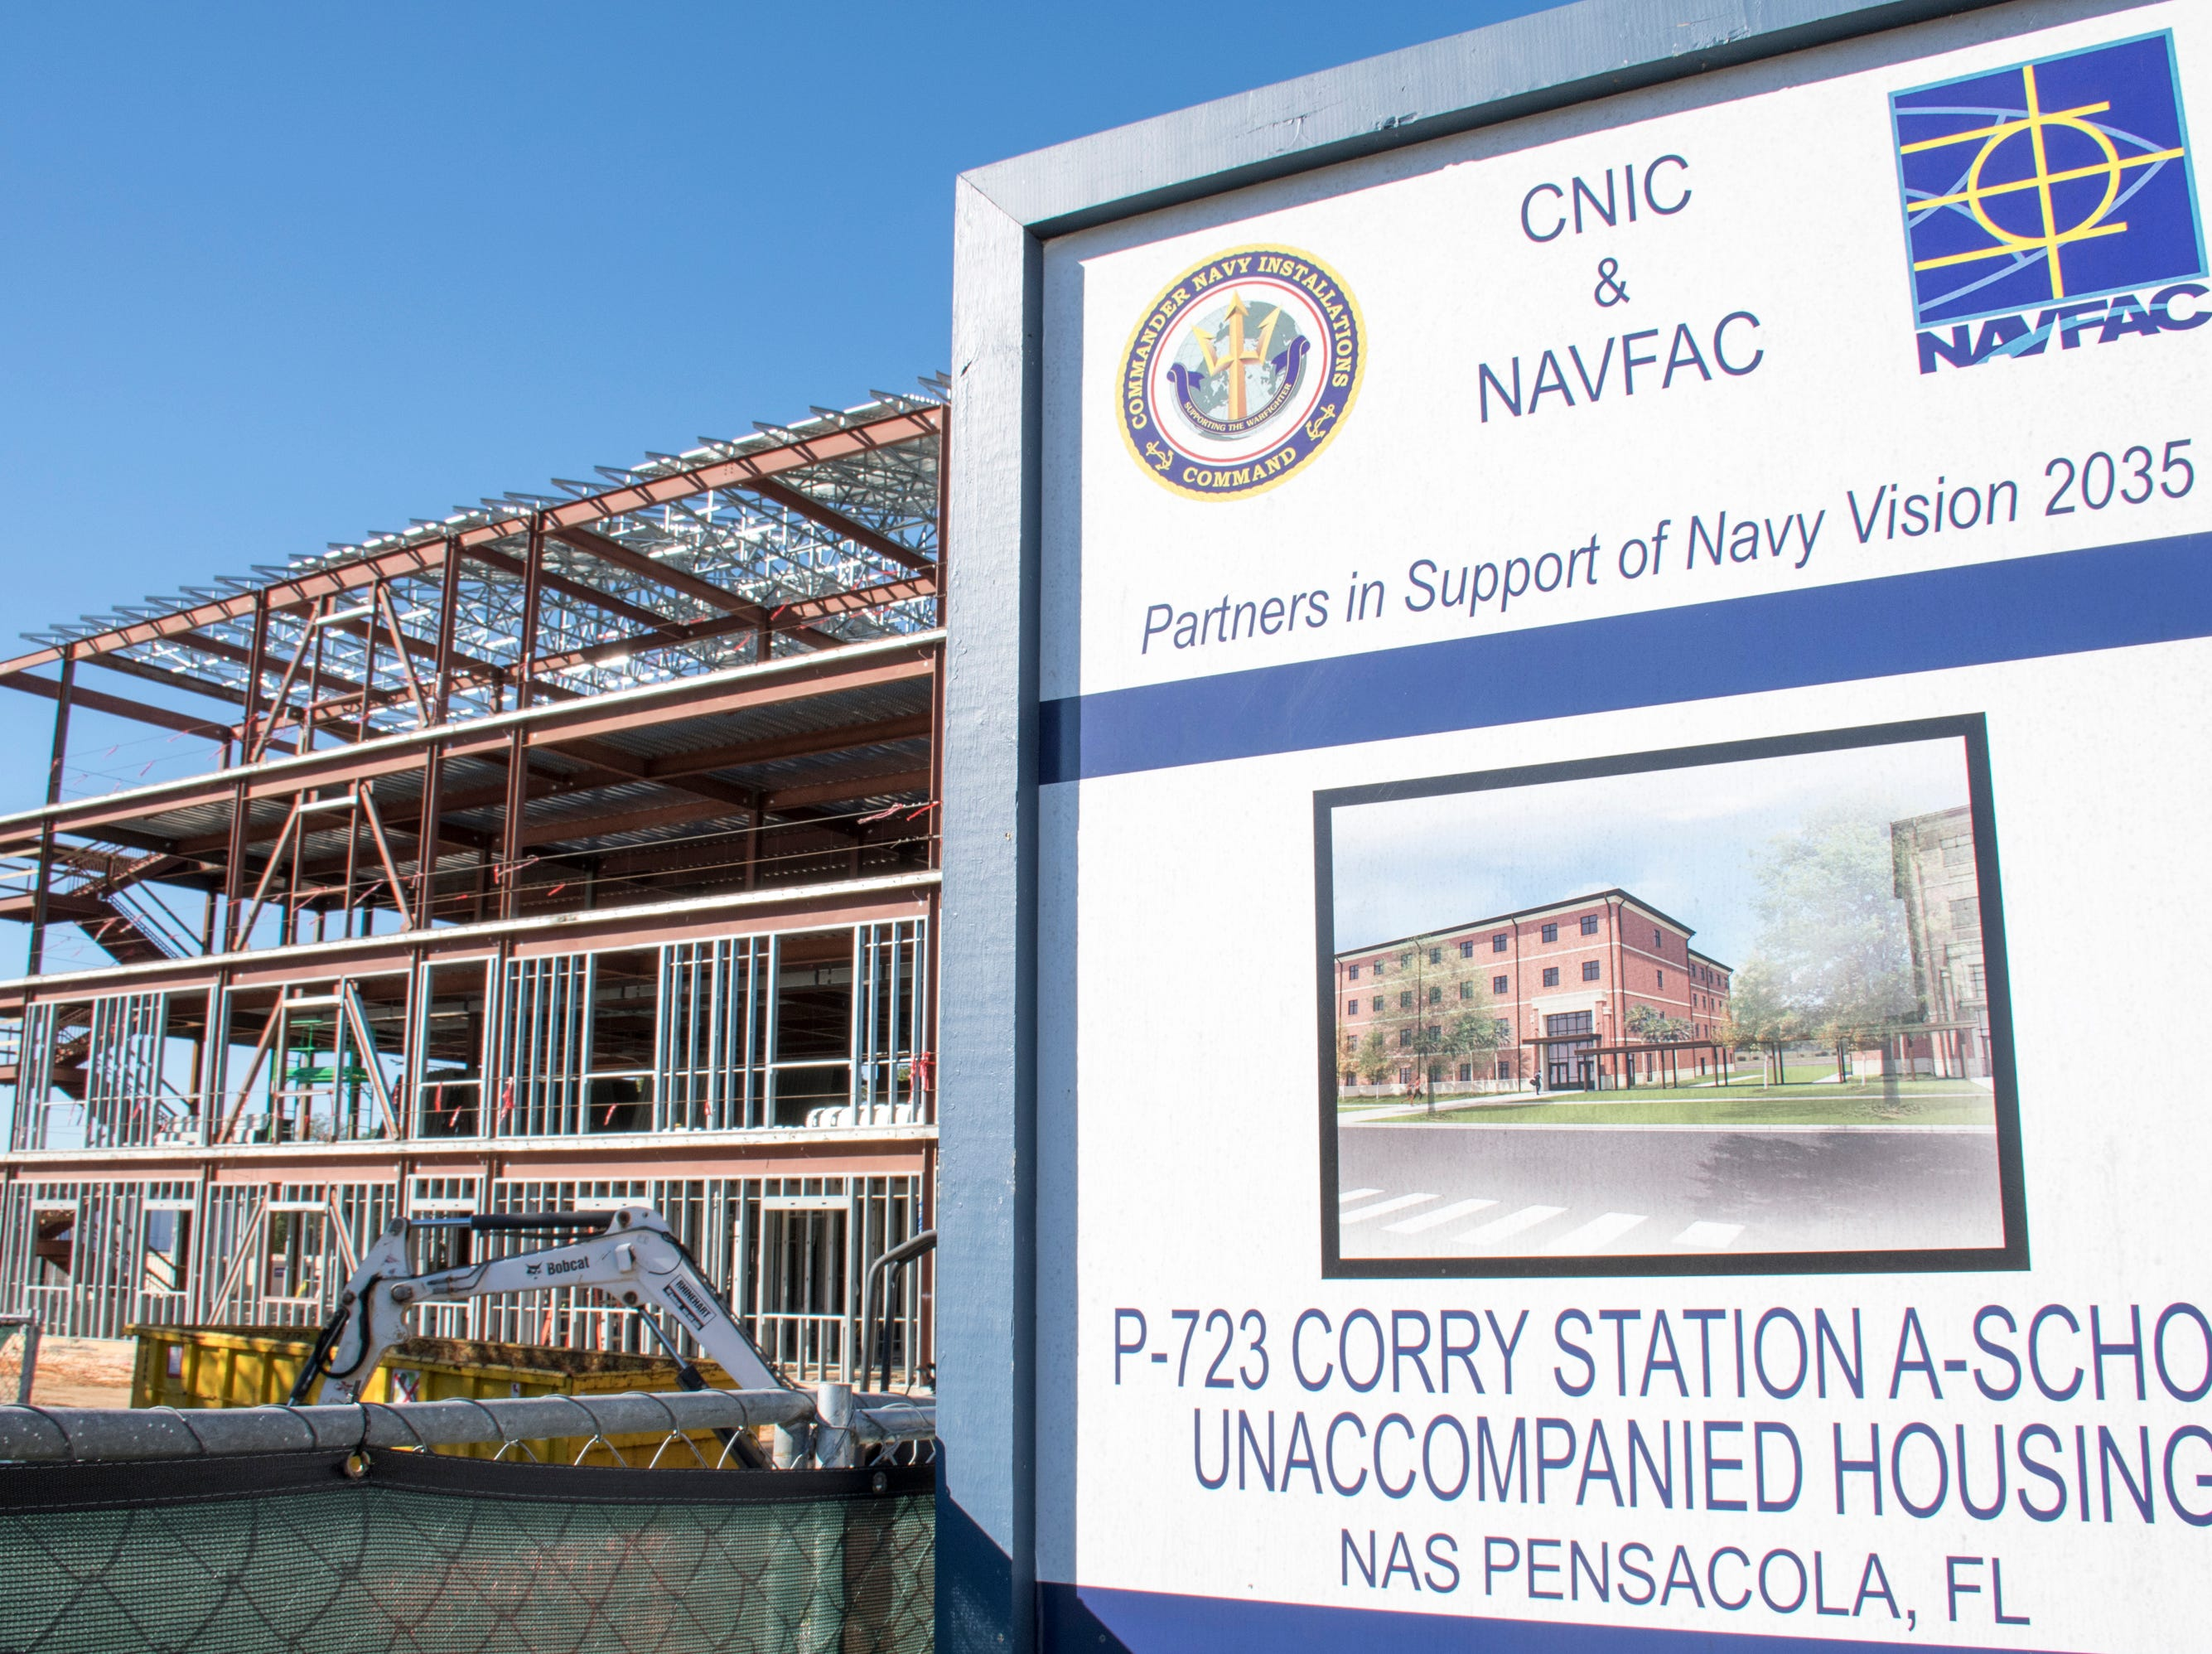 Construction of new housing is underway at NAS Pensacola Corry Station in Pensacola on Thursday, January 10, 2019.